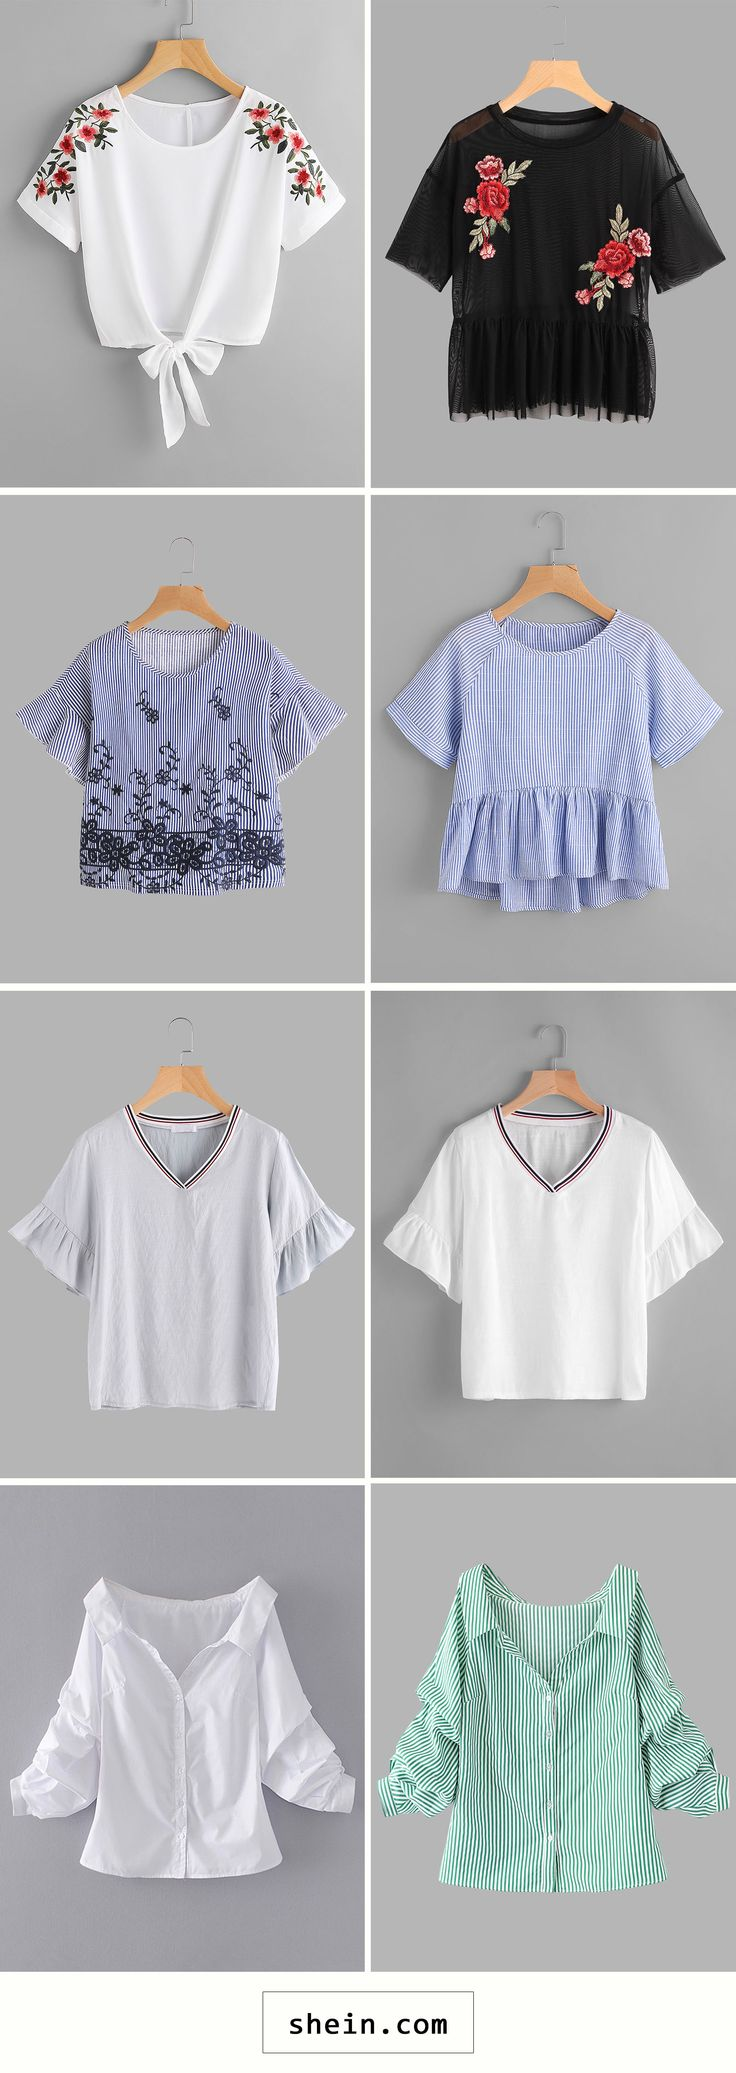 Blouses start at $8!